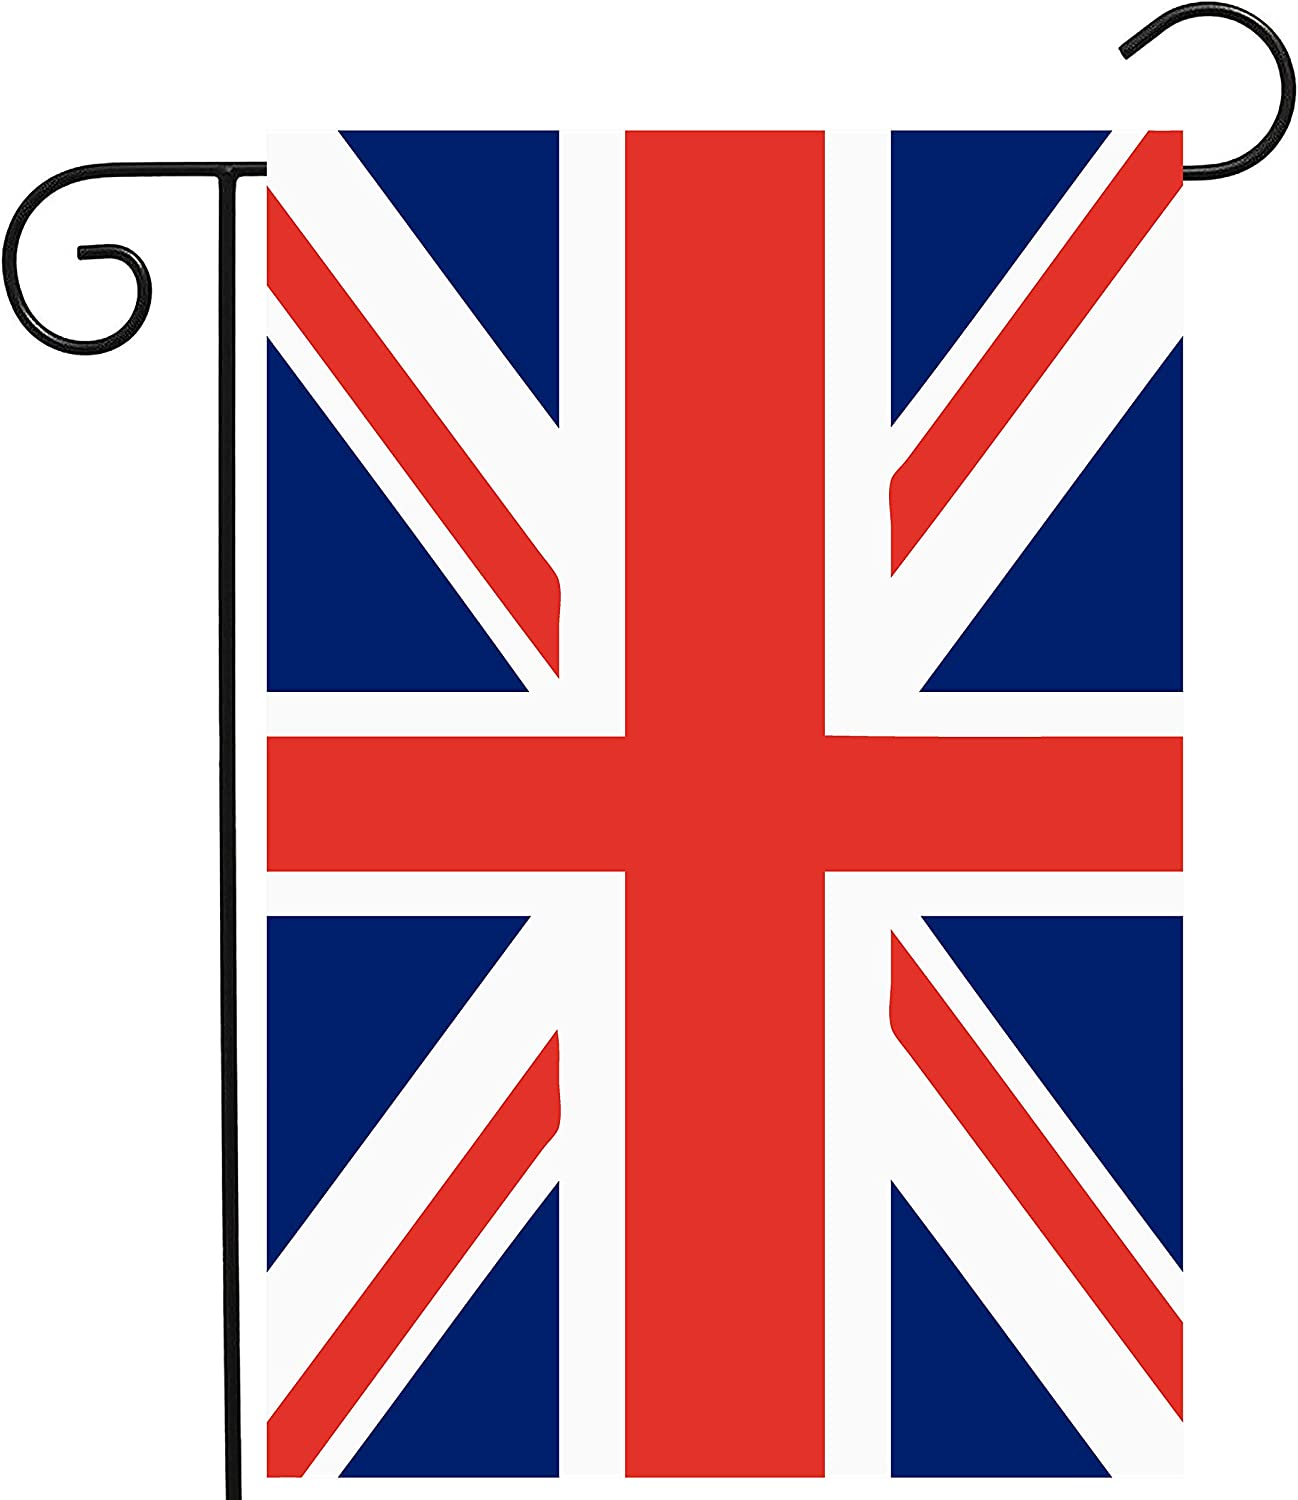 "ShineSnow Union Jack British UK Flag Garden Yard Flag 12""x 18"" Double Sided, Polyester Great Britian England United Kingdom Welcome House Flag Banners for Patio Lawn Outdoor Home Decor"